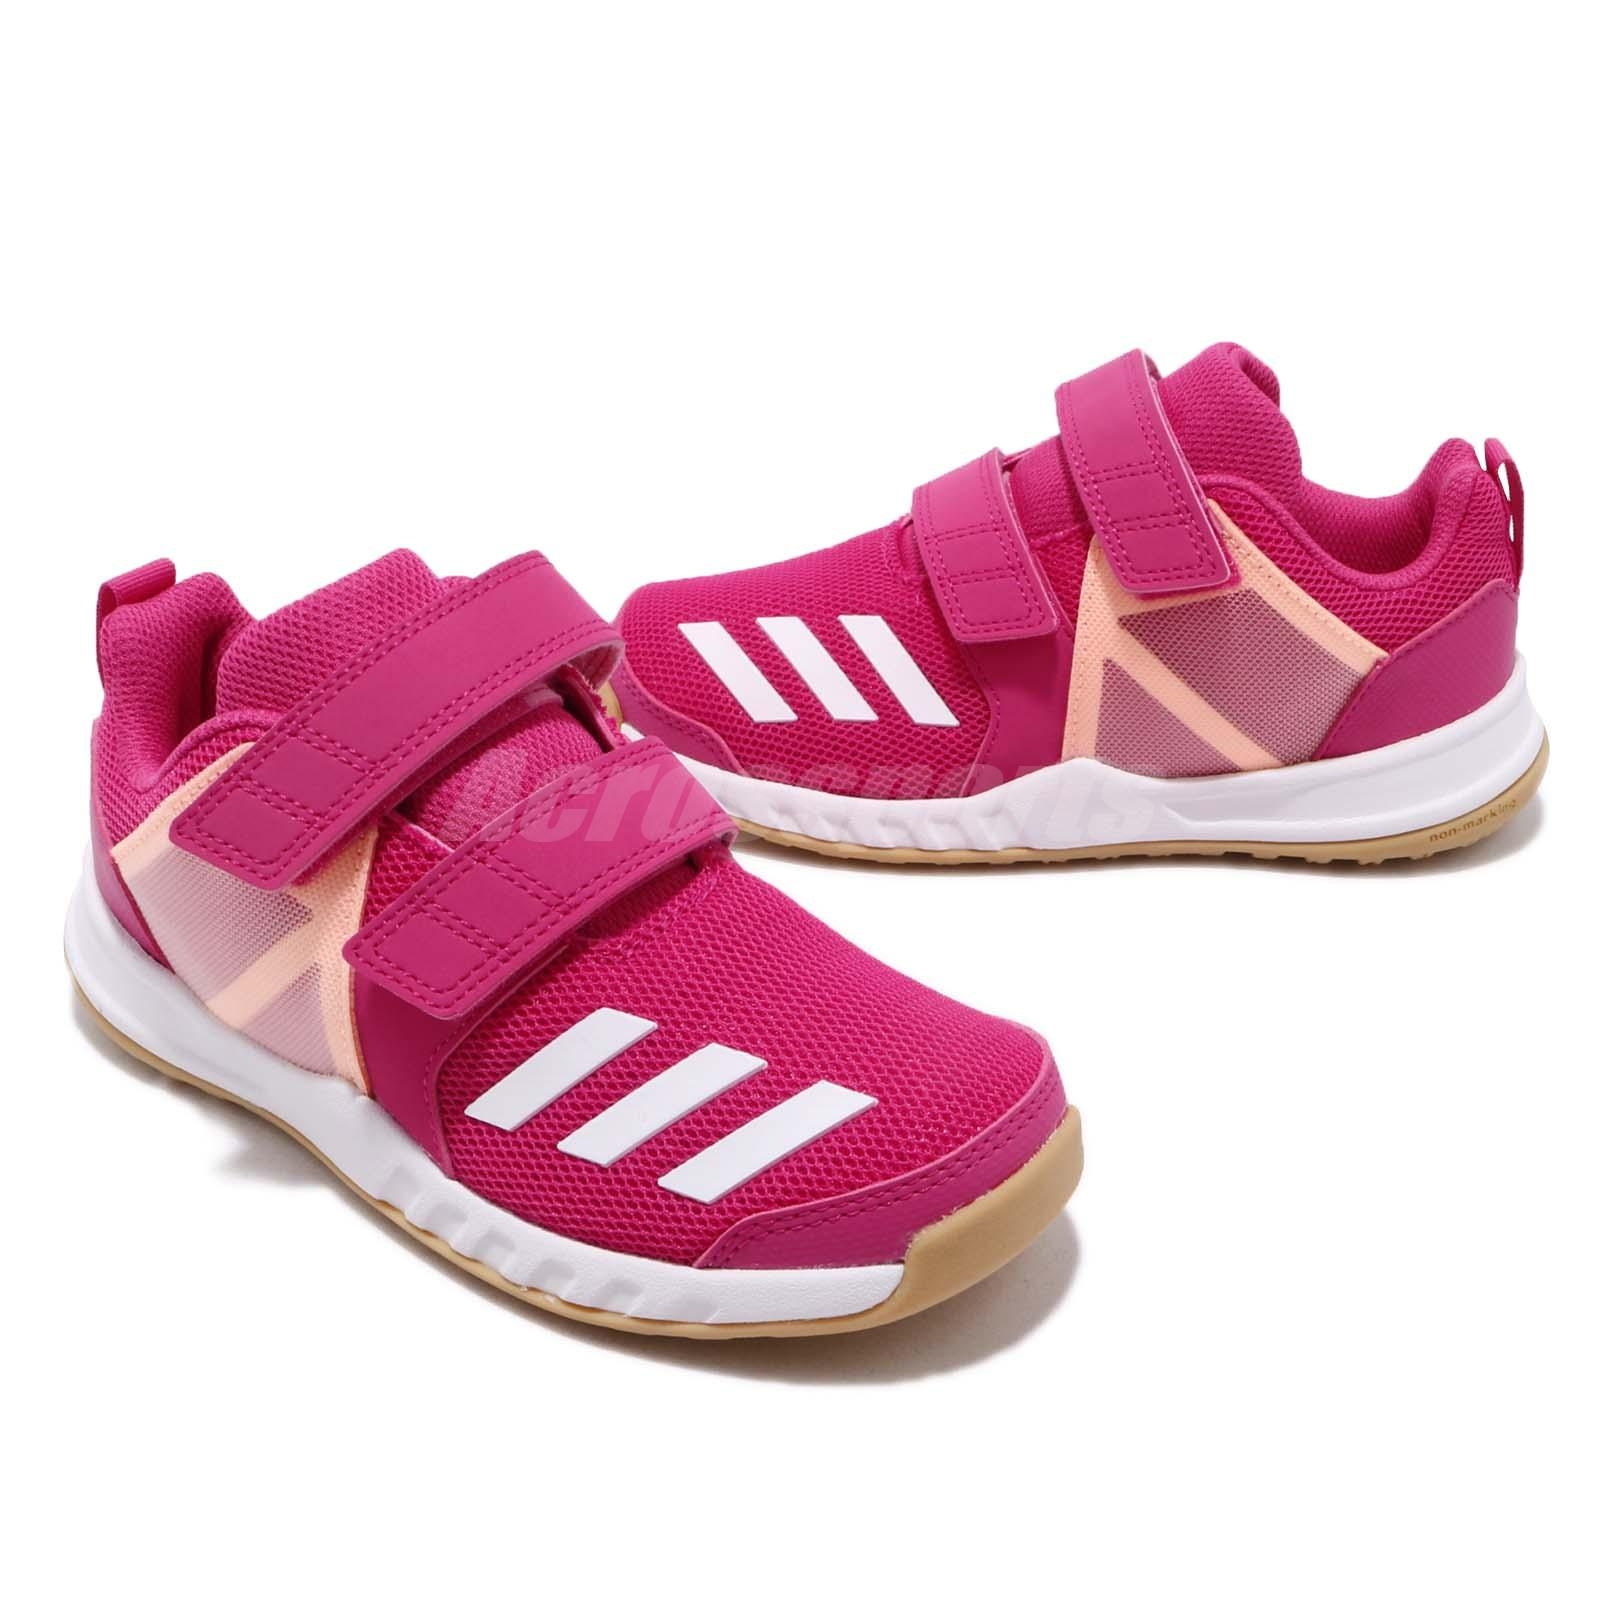 reputable site 89465 b0484 adidas FortaGym CF K Real Magenta Pink Gum Kid Junior Preschool ...